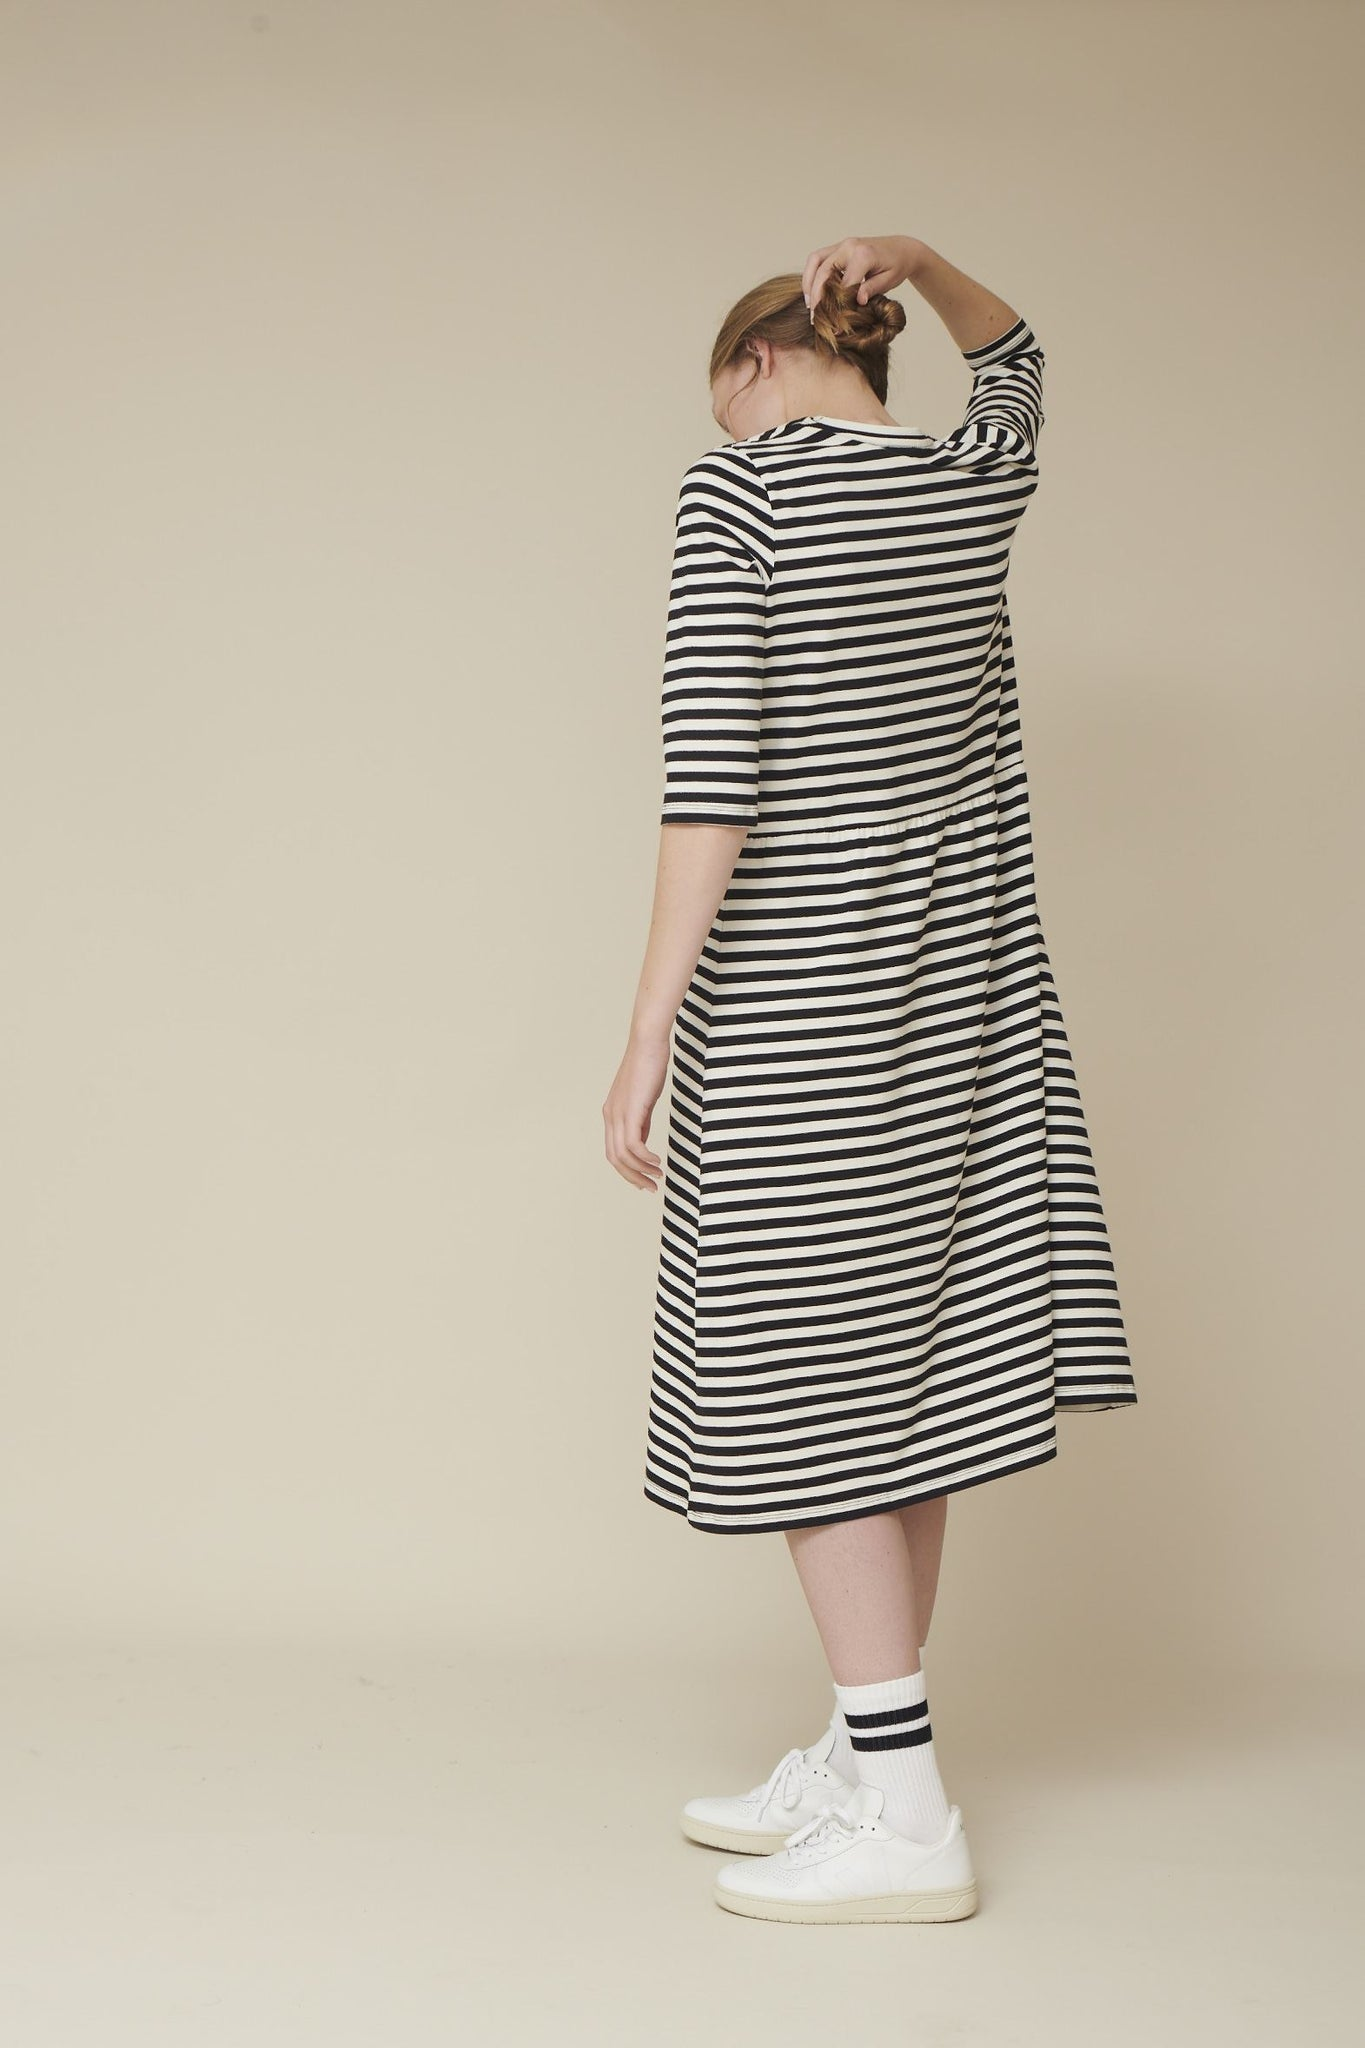 Basic Apparel // Elba dress - black / offwhite stripe